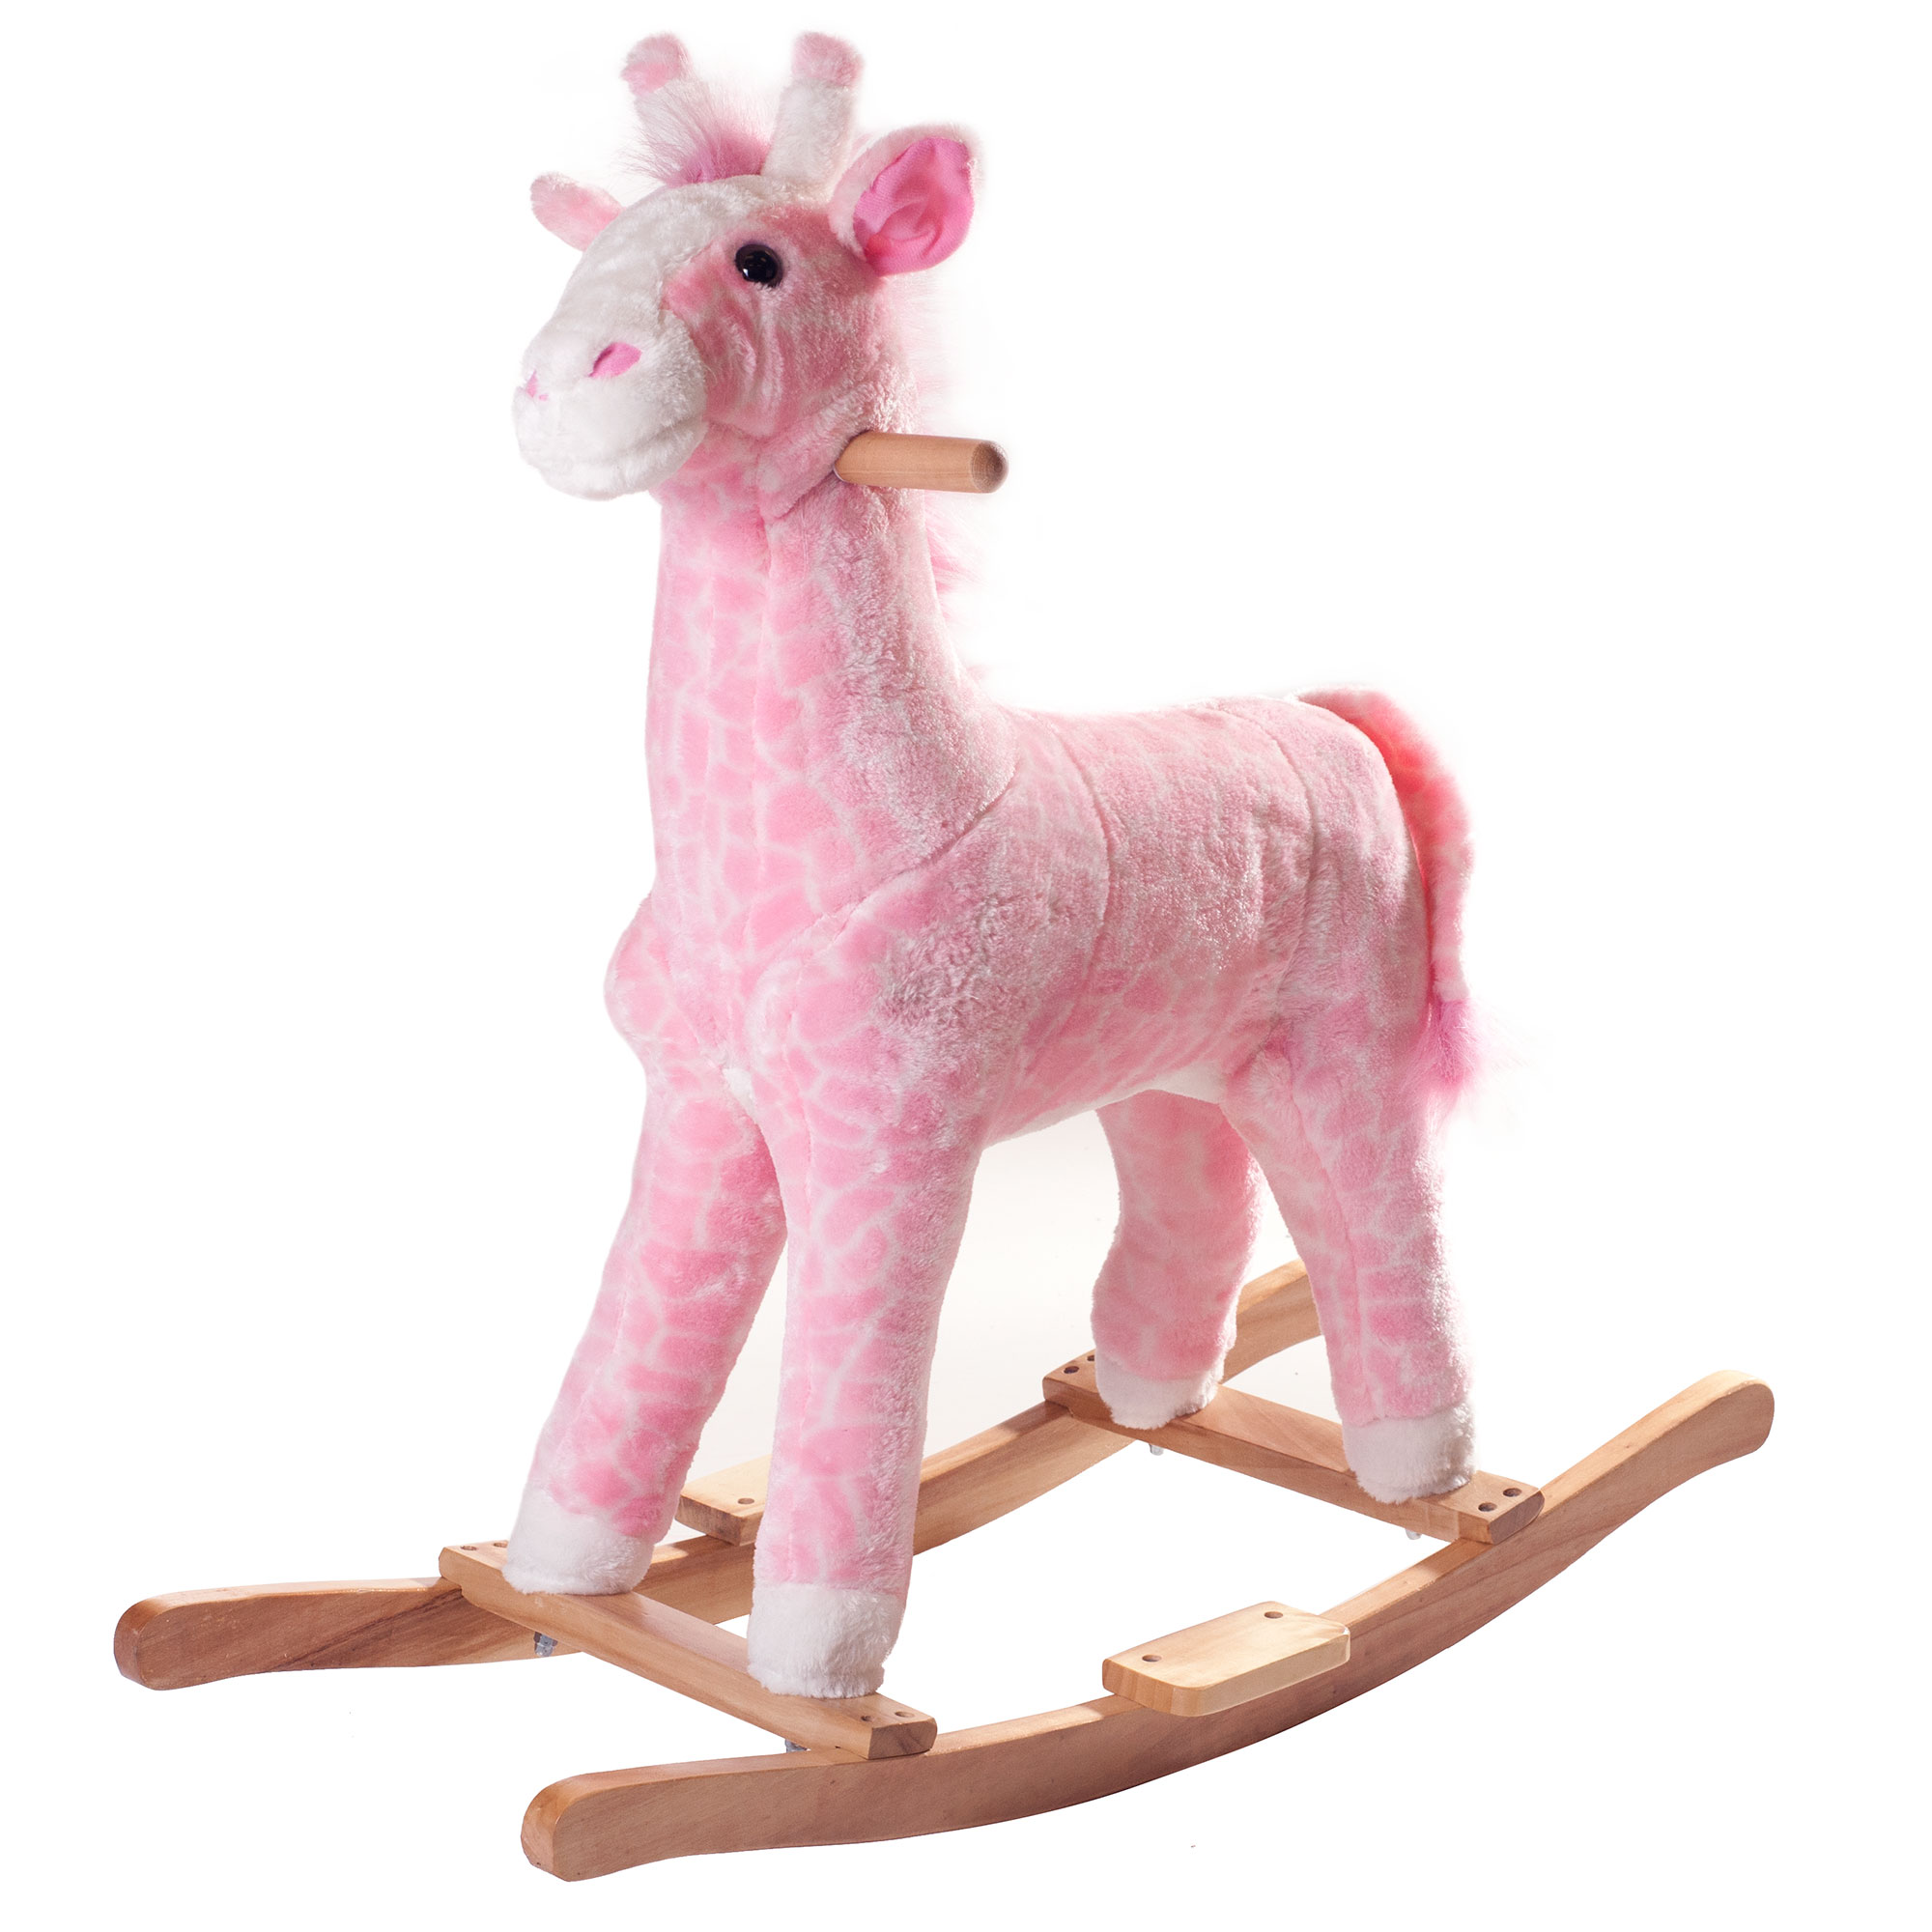 Penny the Pink Giraffe Plush Rocking Horse Animal Ride On Toy by Happy Trails